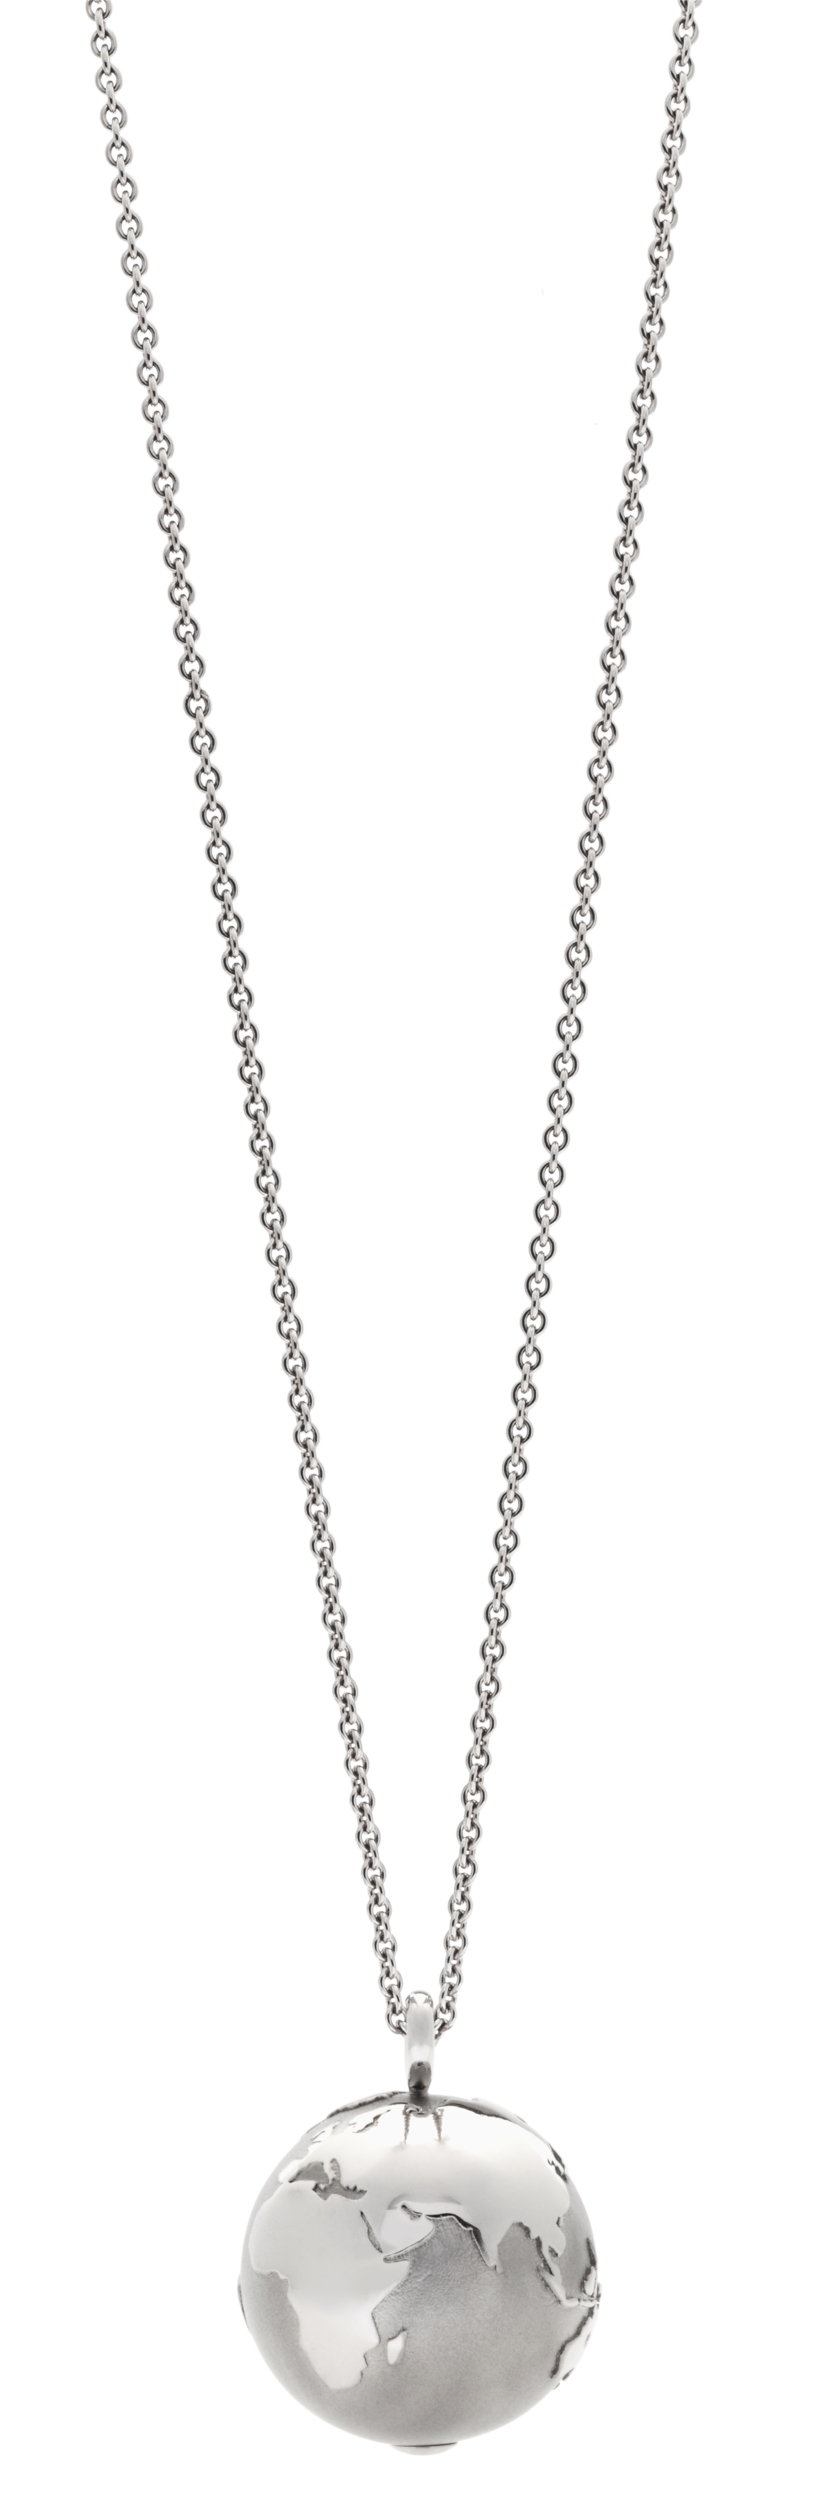 Necklace MY WORLD earth pendant stainless steel 19 mm set with 1 diamond